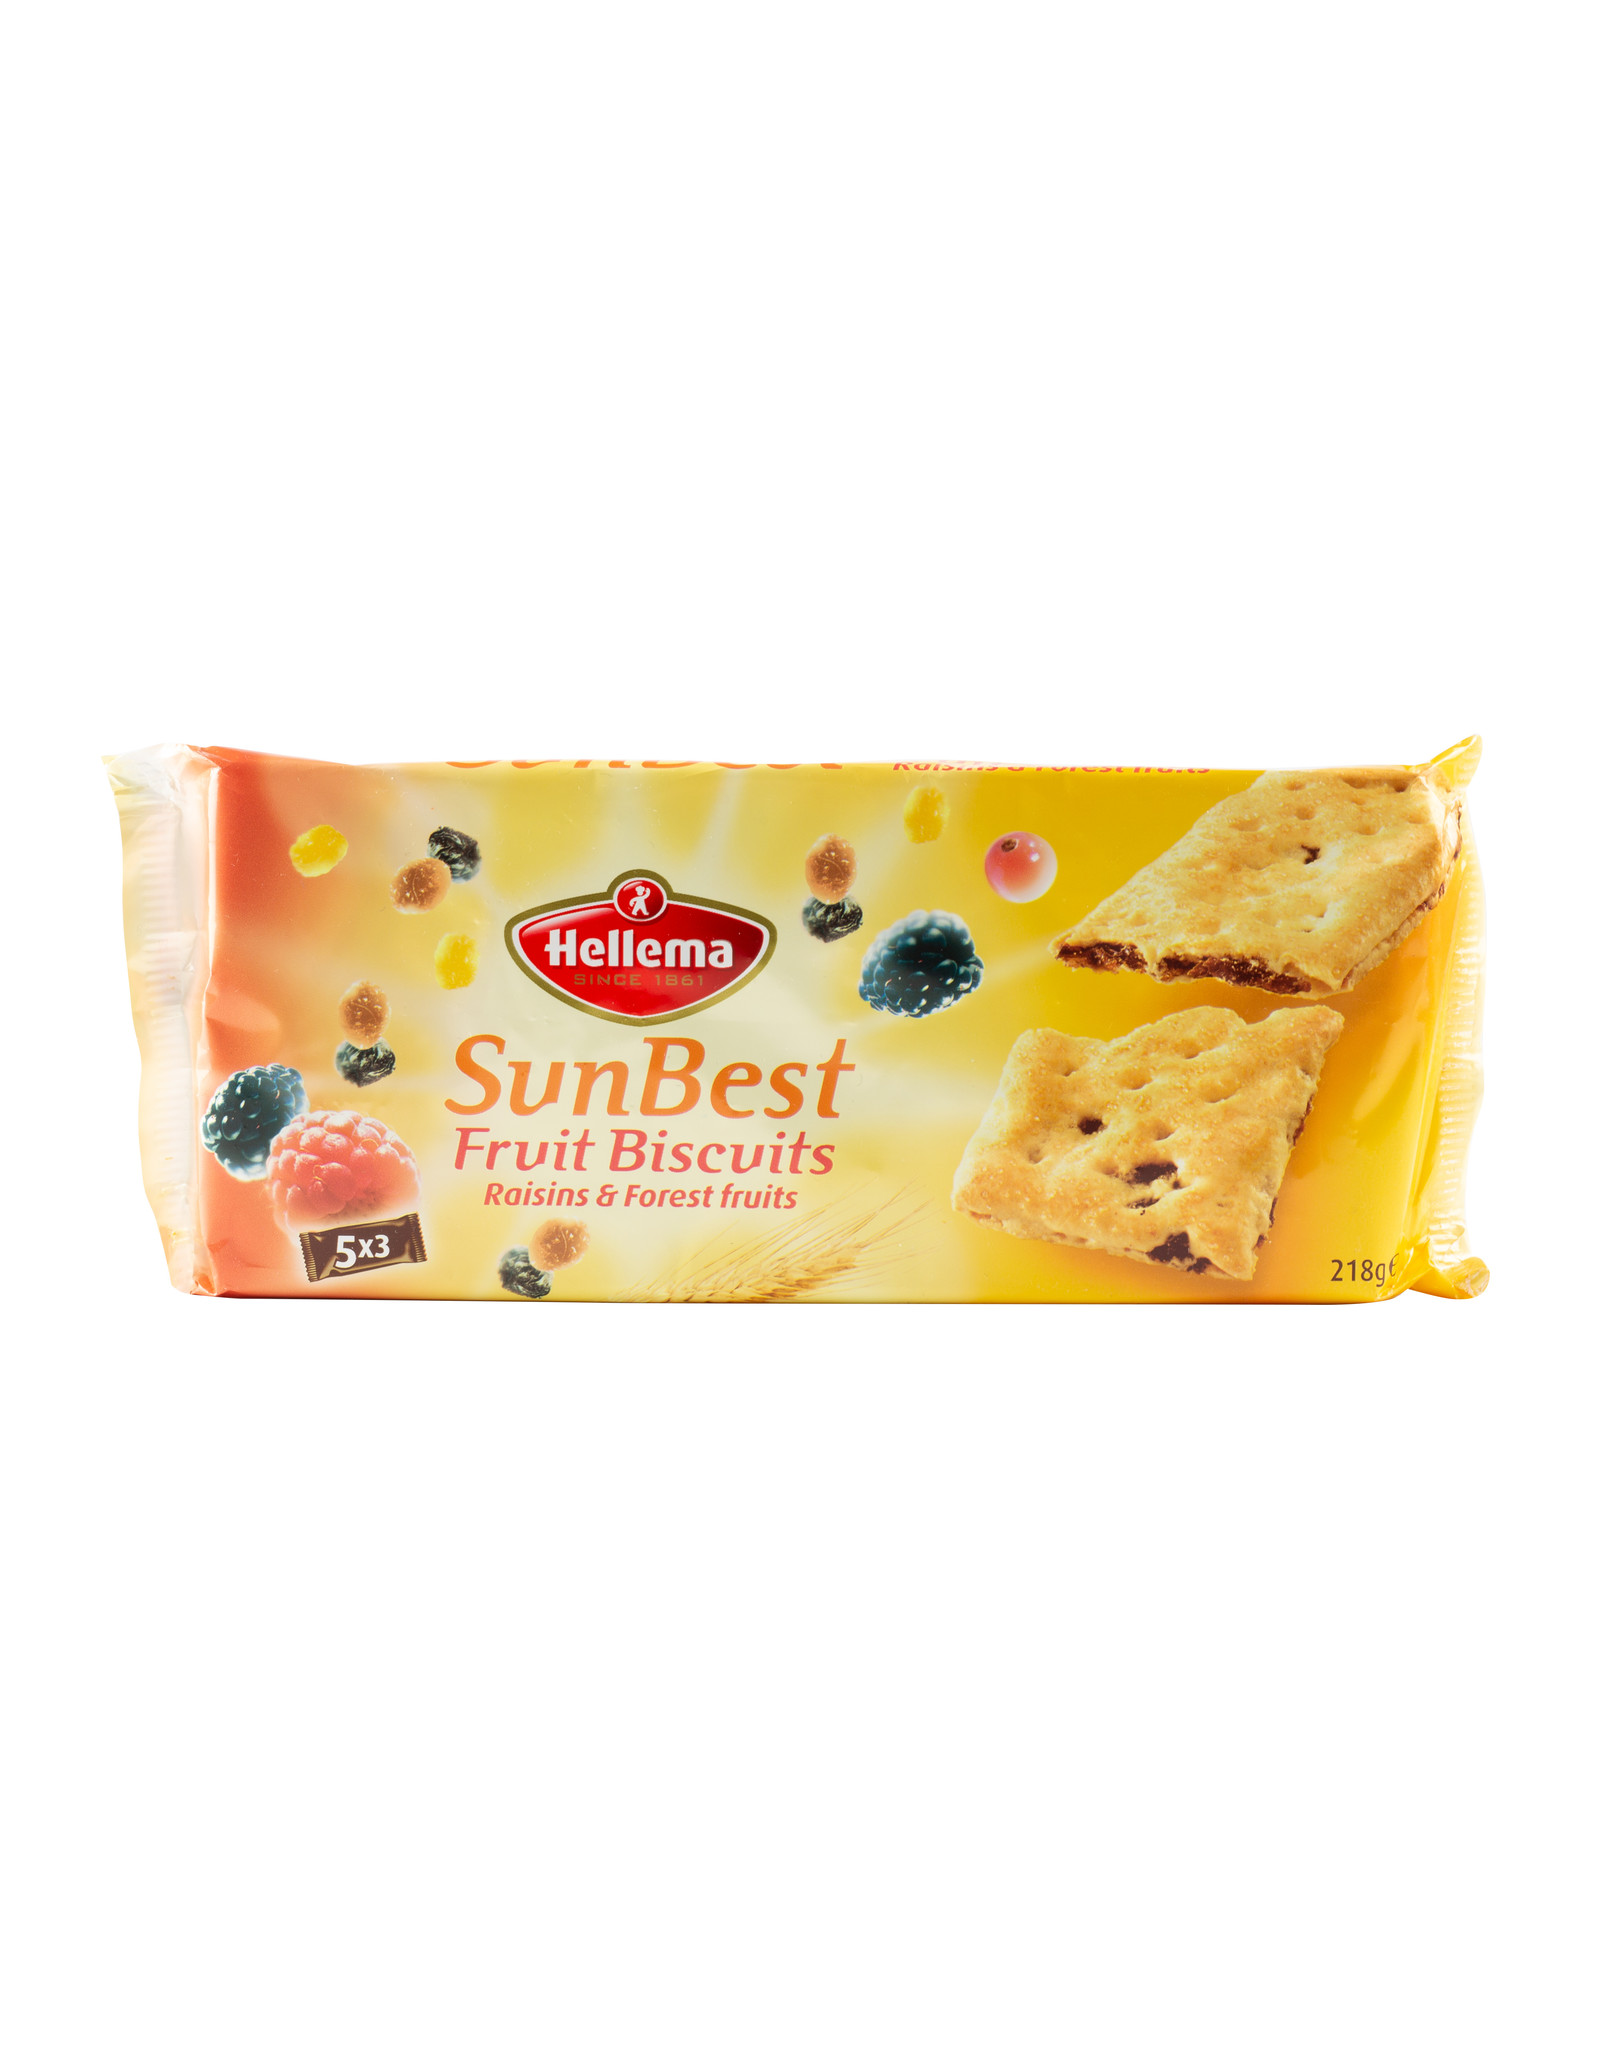 Hellema HELLEMA SunBest Fruit Biscuits RAISINS & FOREST FRUITS - 24x 218 grams pack - master carton